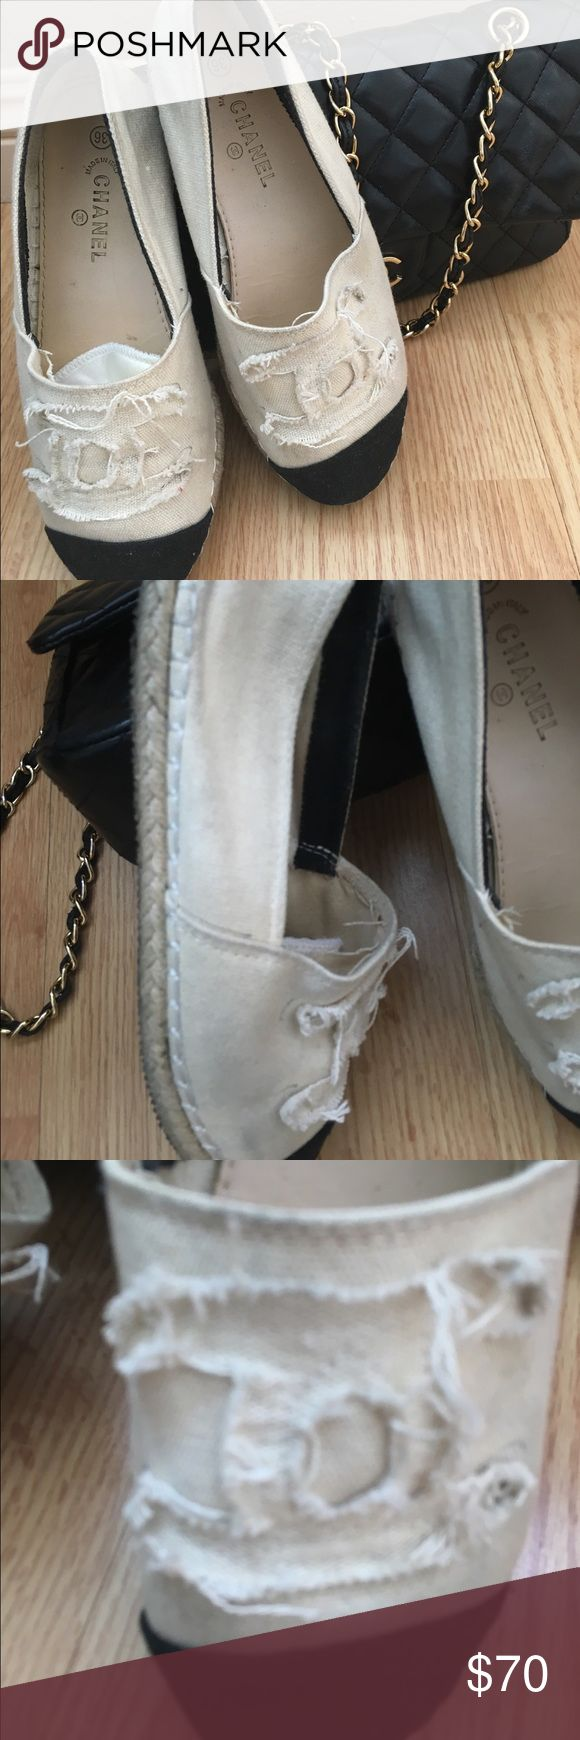 ORDER HERE. CANVAS CHANEL ESPADRILLES Size 6. Please review the pictures carefully as they are the best description of the item. A bit scuffs on the side. Black & white. Cap toe. Read comments CHANEL Shoes Espadrilles